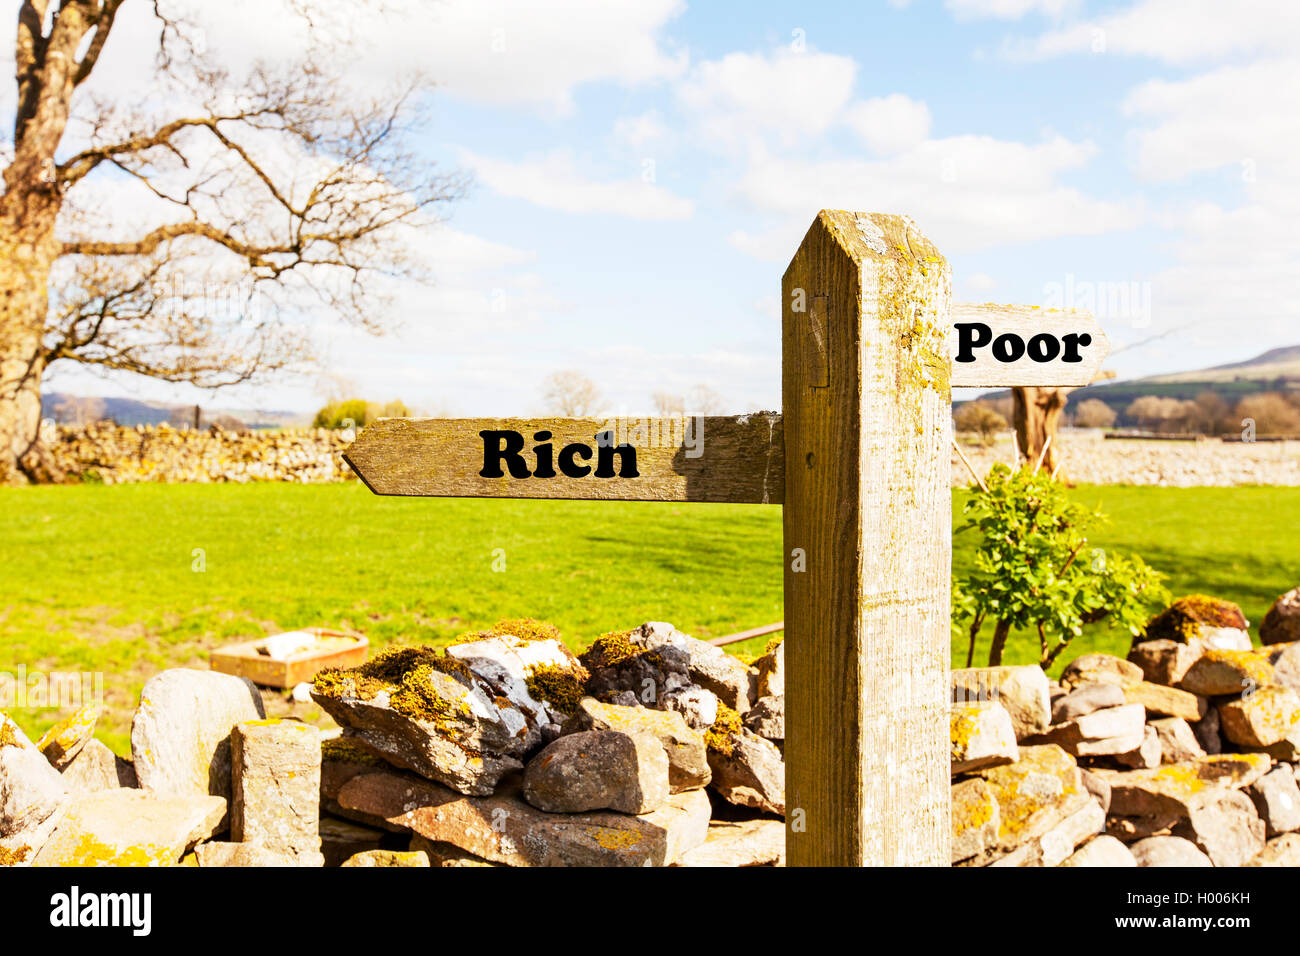 Rich poor divide concept sign richer poorer problem worry division choice choose life direction future concepts - Stock Image